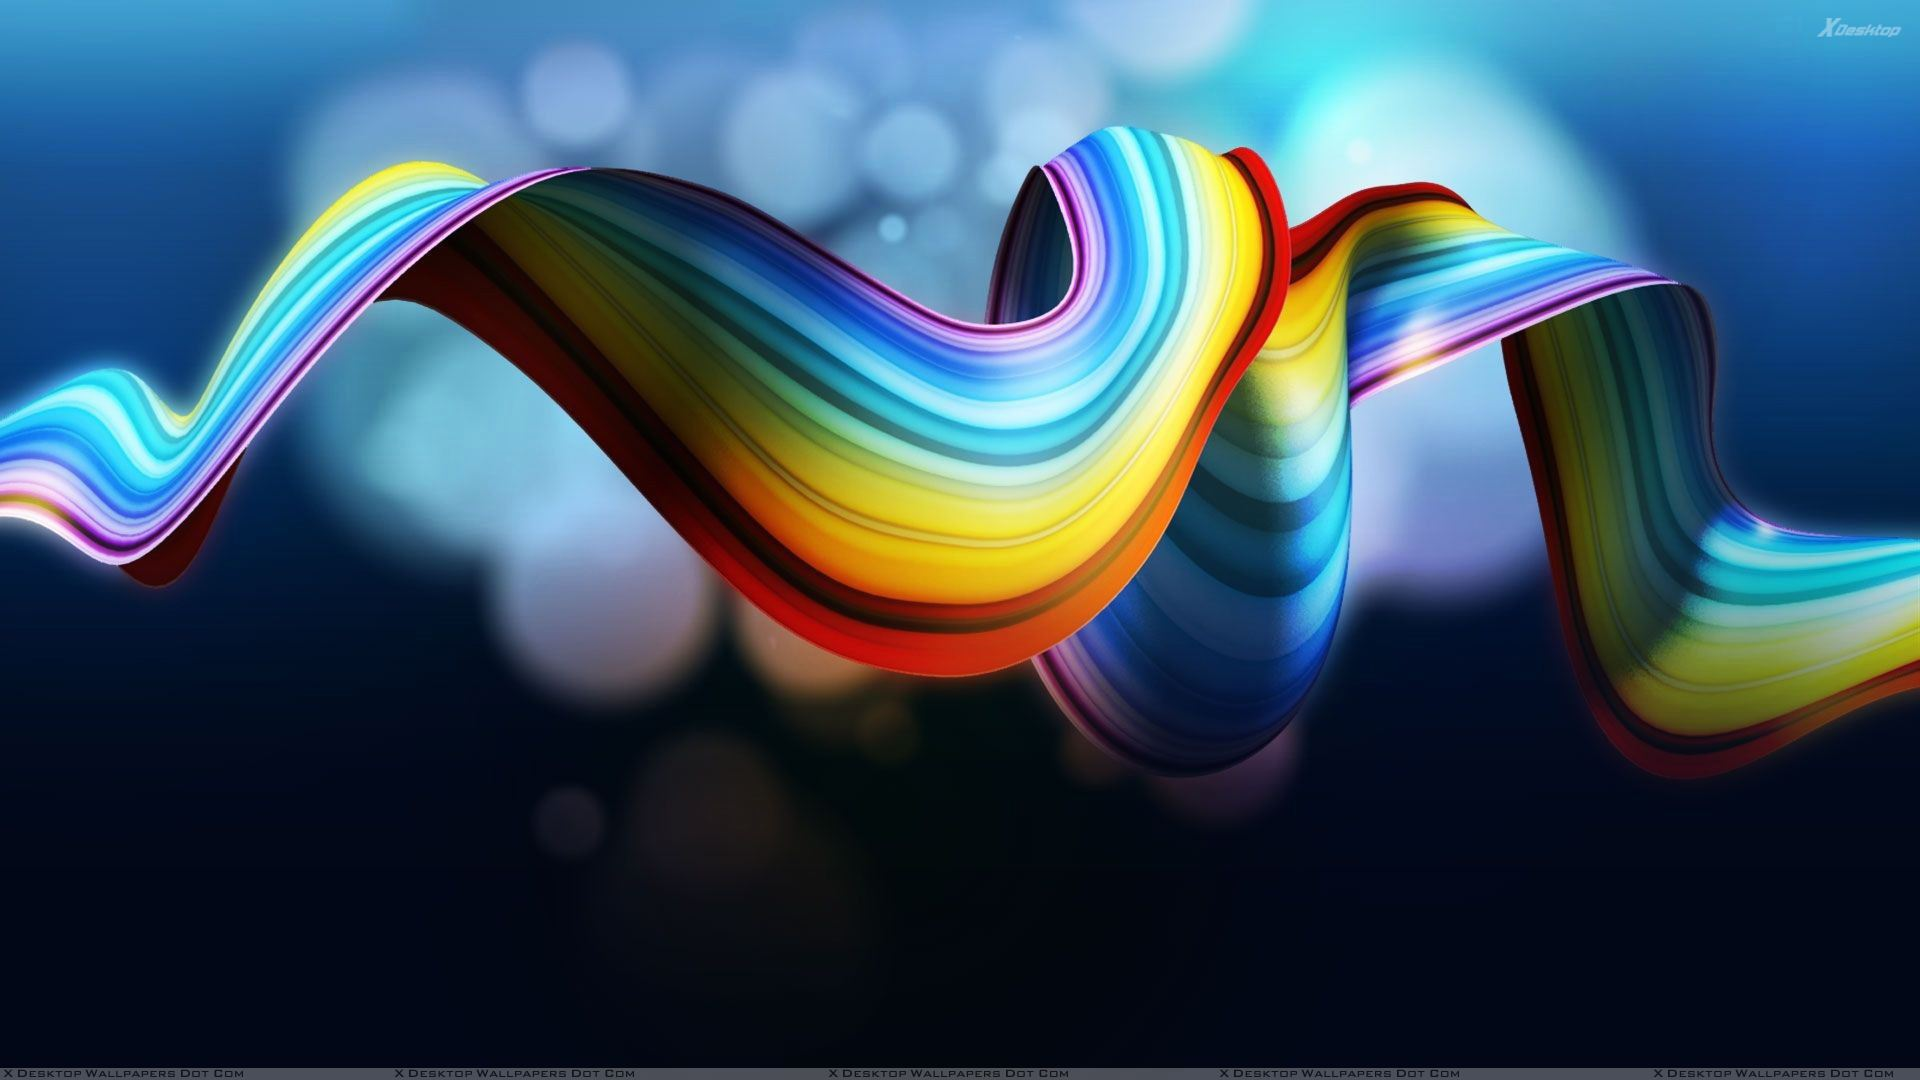 cool rainbow abstract wallpaper